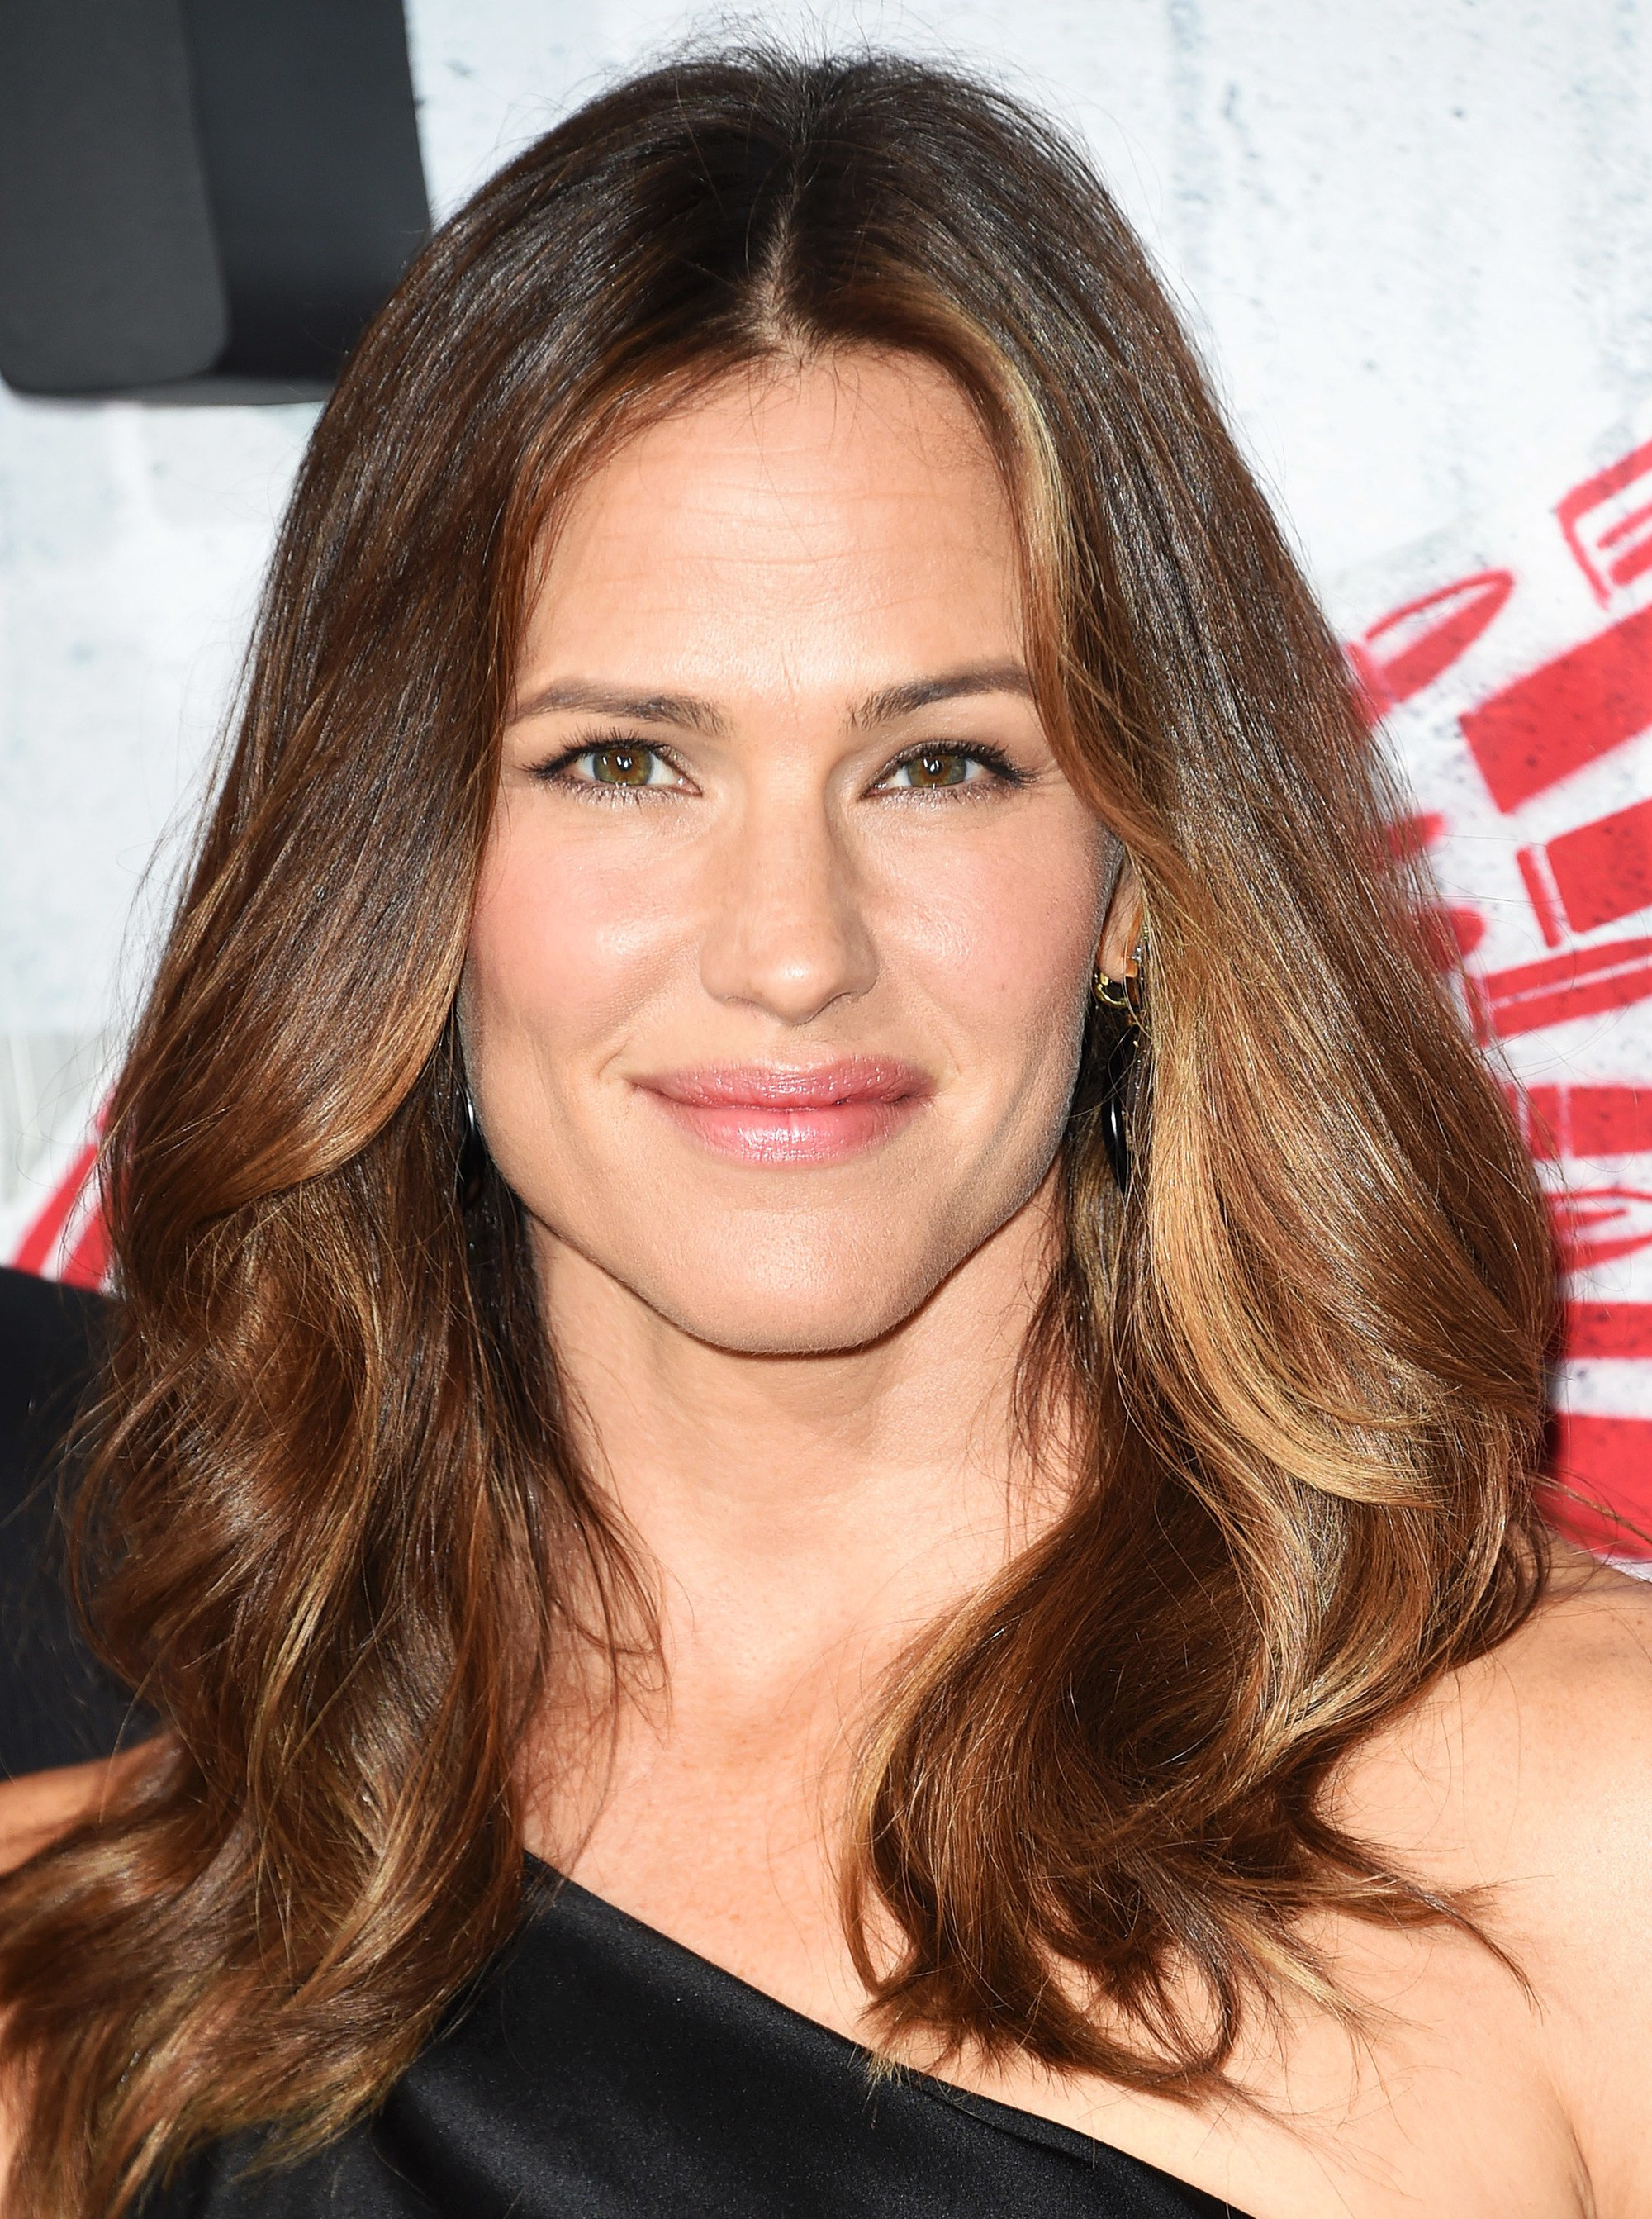 Brown hair with blonde highlights: Jennifer Garner with voluminous wavy brown hair with blonde highlights around her face